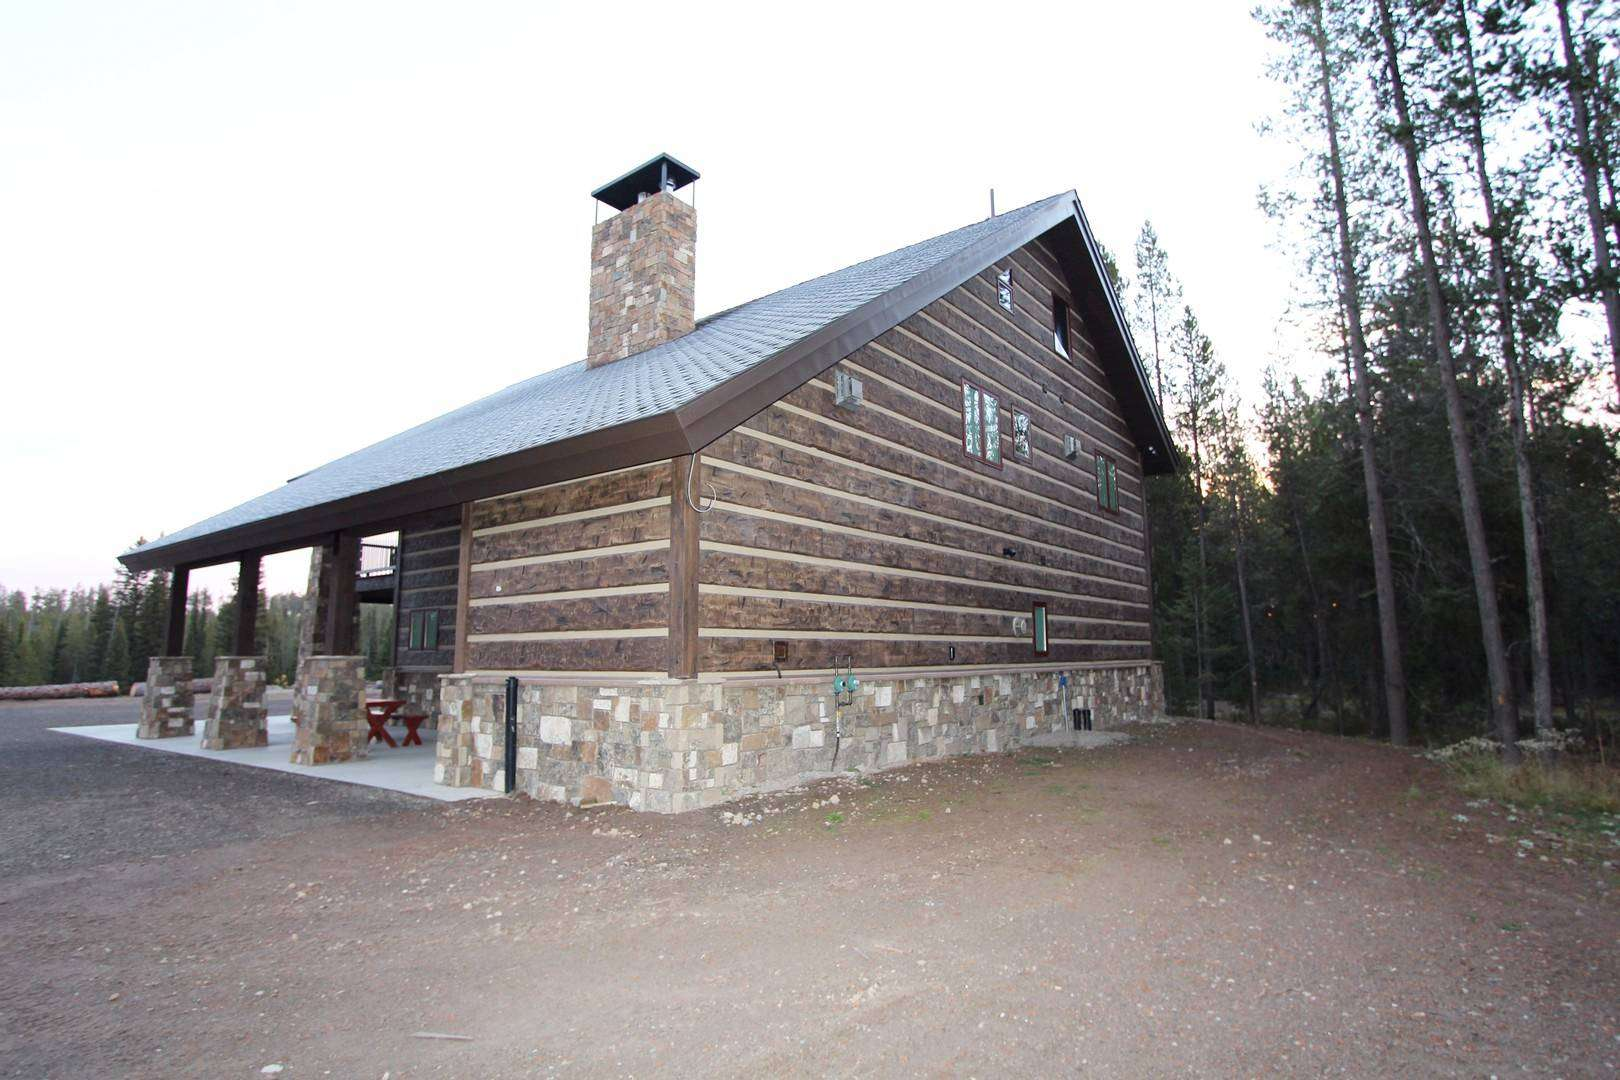 Concrete Siding For Homes : Yellowstone chalet everlog systems